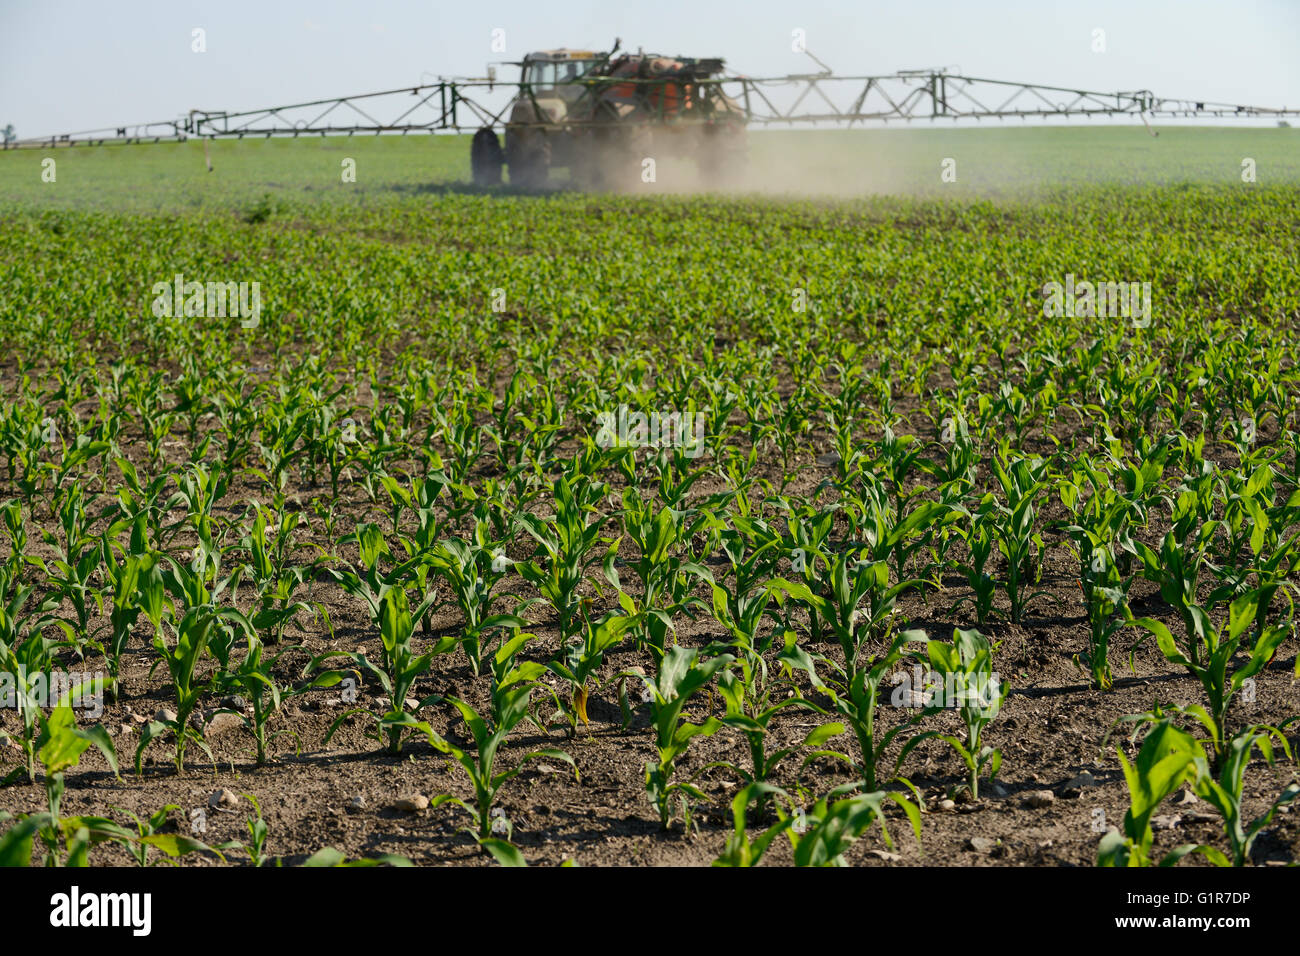 ROMANIA Banat, village Semlac, 2000 hectare farm of german farmer, pesticide and herbicides application in maize - Stock Image